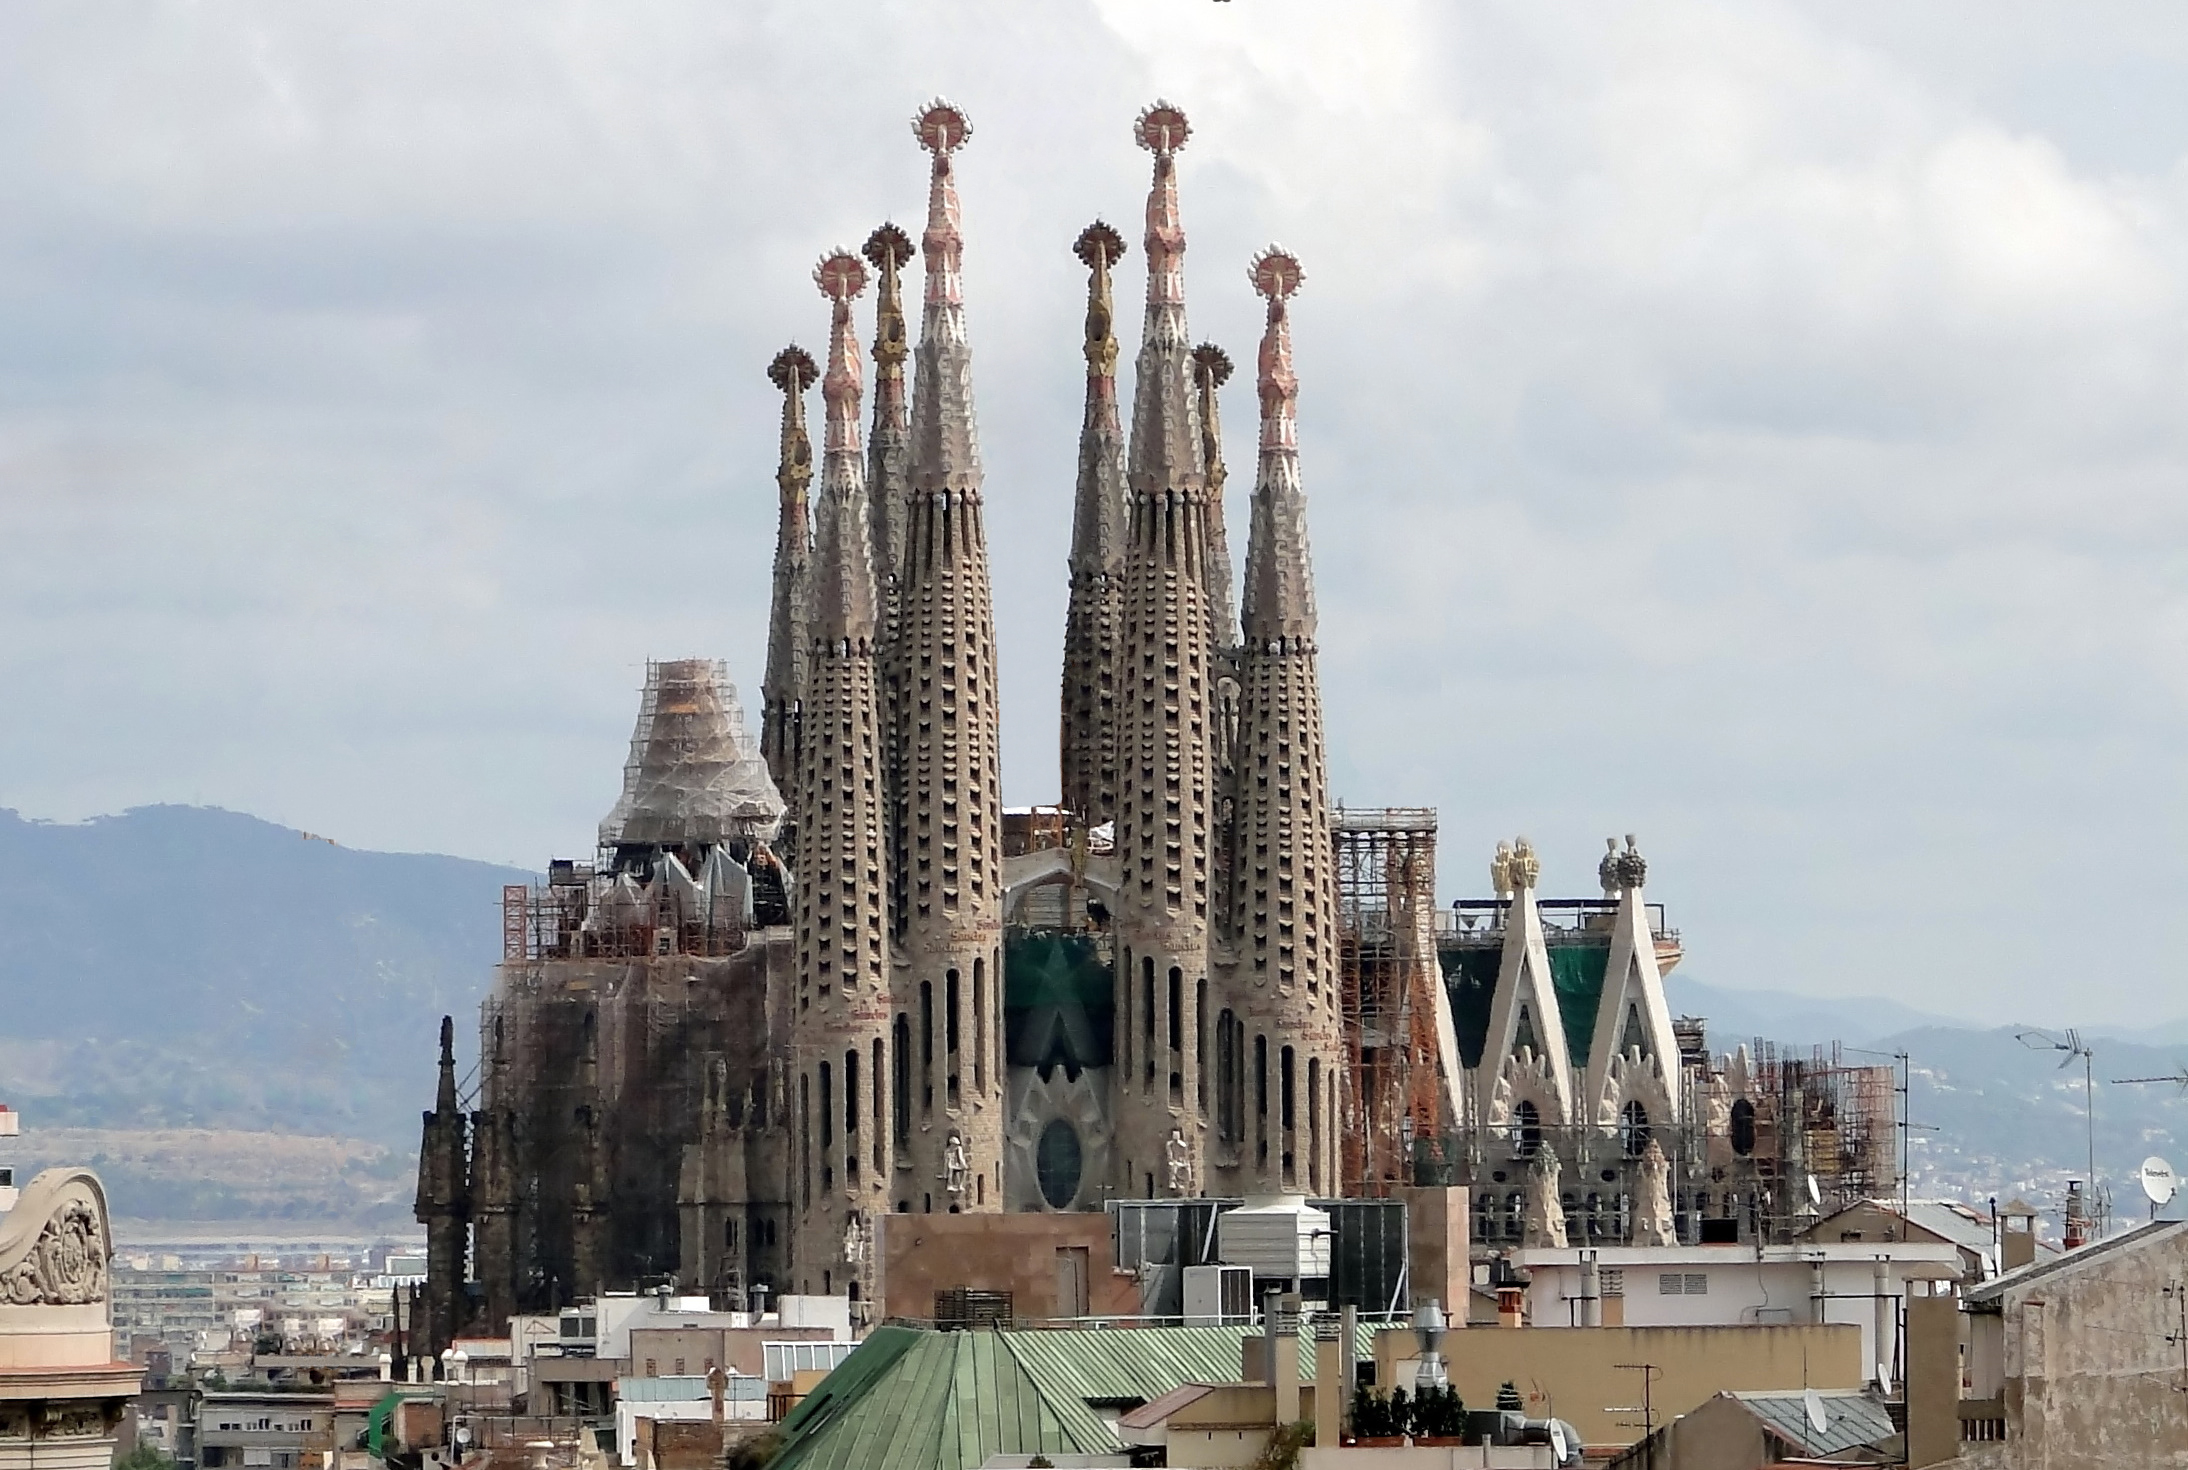 Even La Sagrada Familia could be replicated, given the time and money.